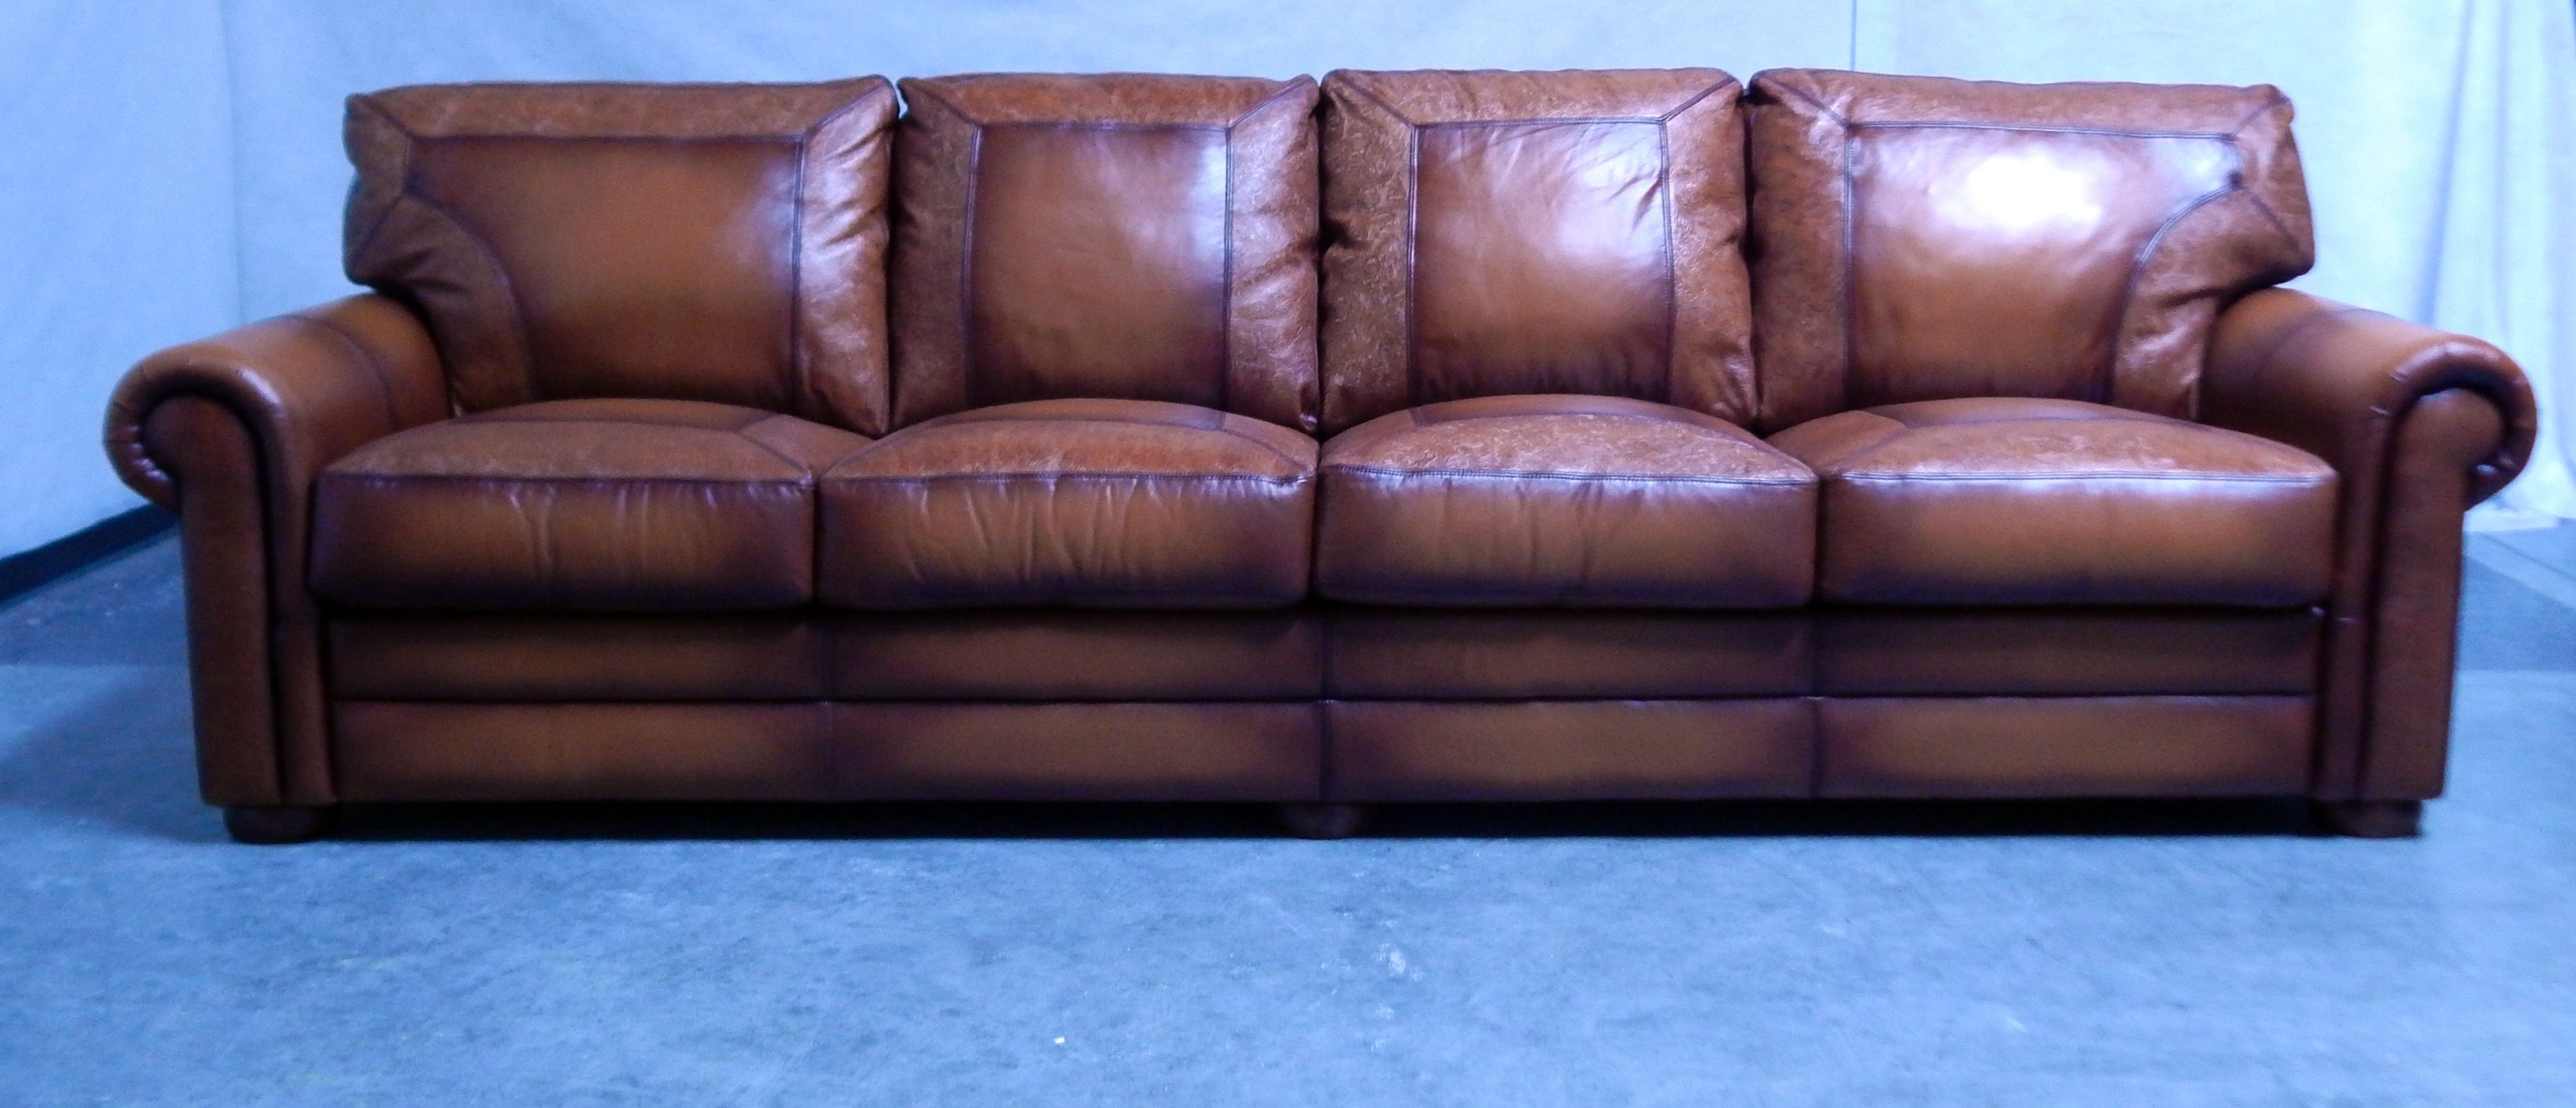 The Chaku Family Will Really Love This Custom Presidential Leather Sofa From Leatherpes